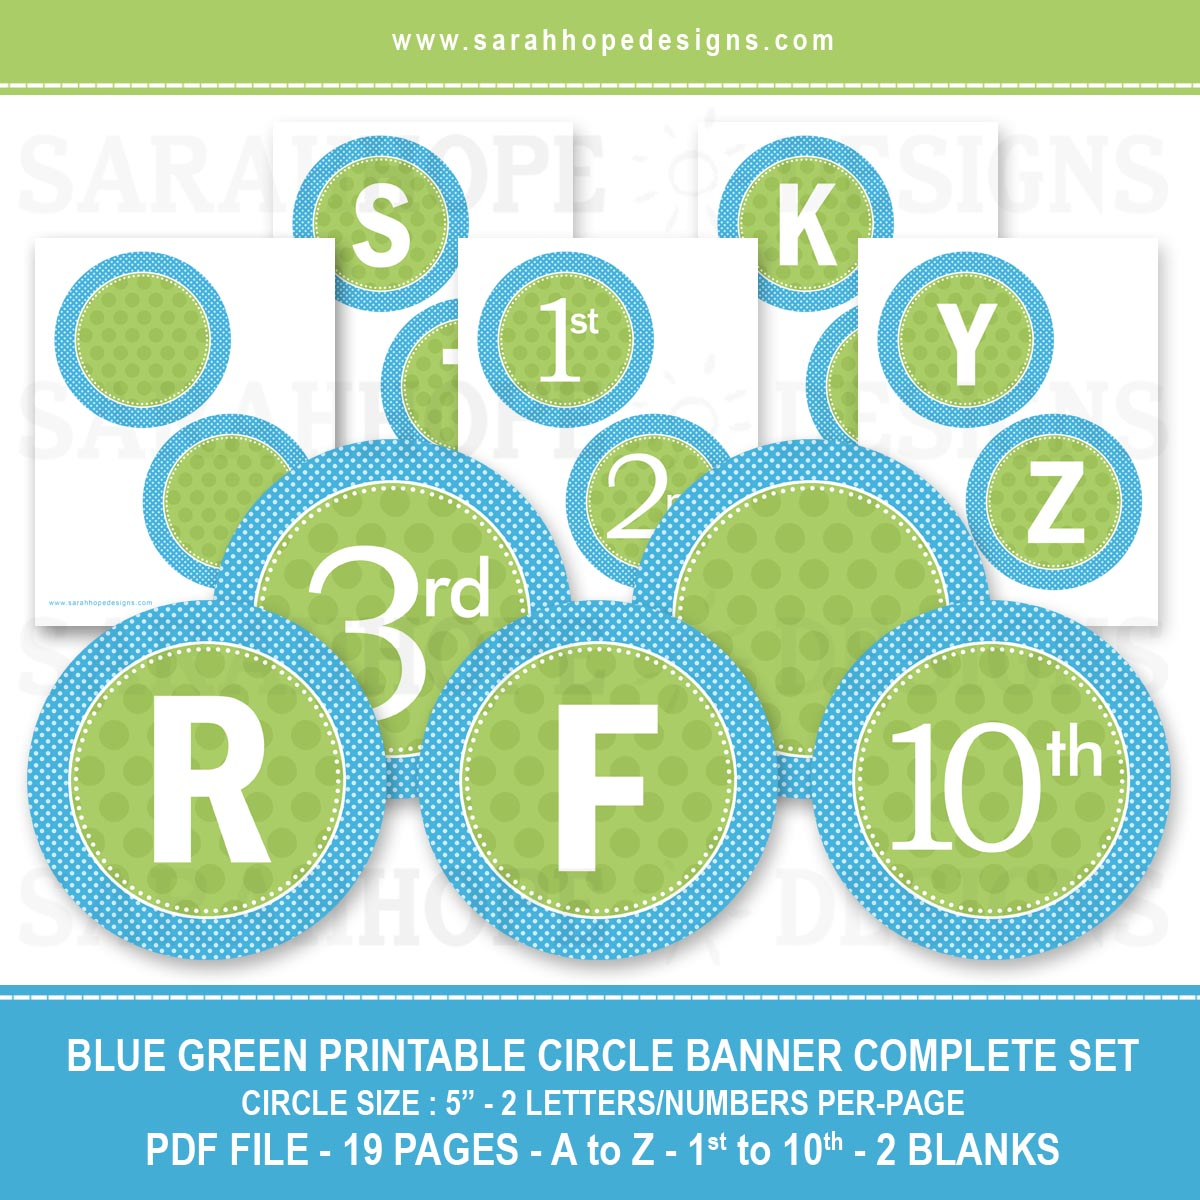 6 Images of Free Printable Banner Blue